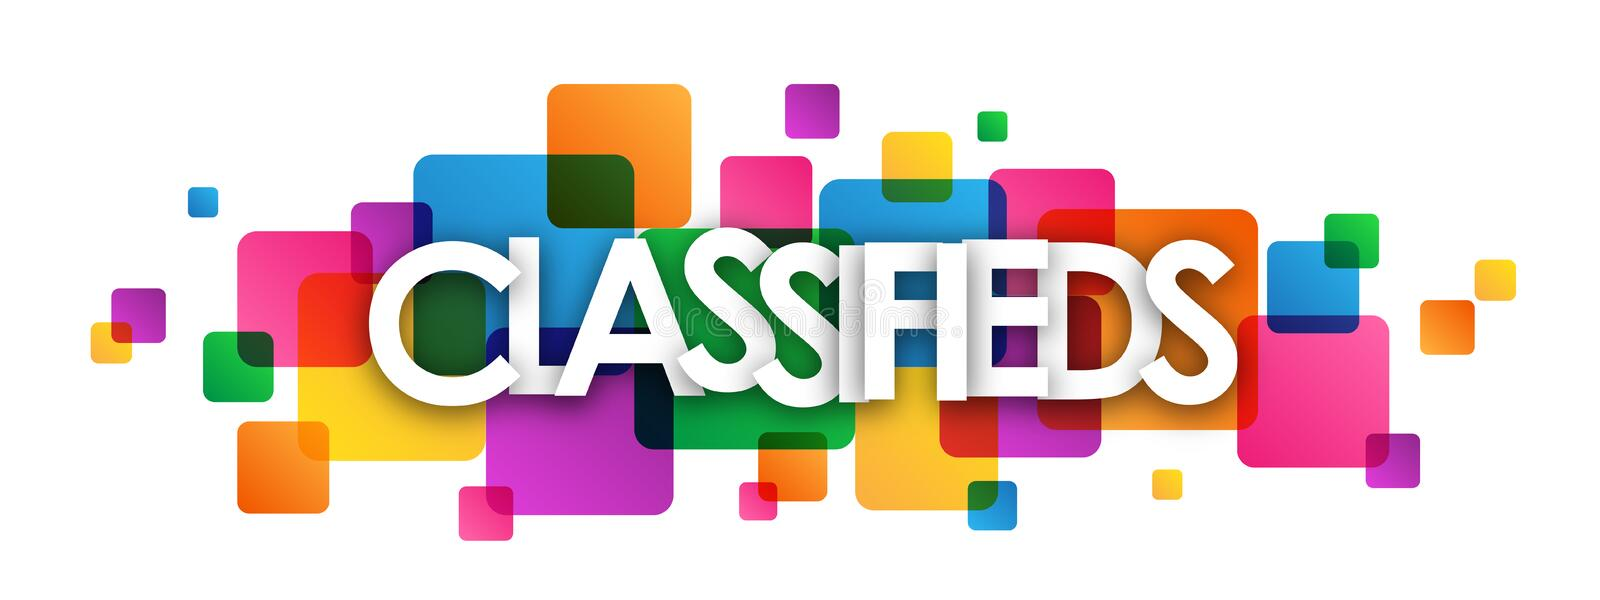 CLASSIFIEDS colorful overlapping squares banner royalty free illustration